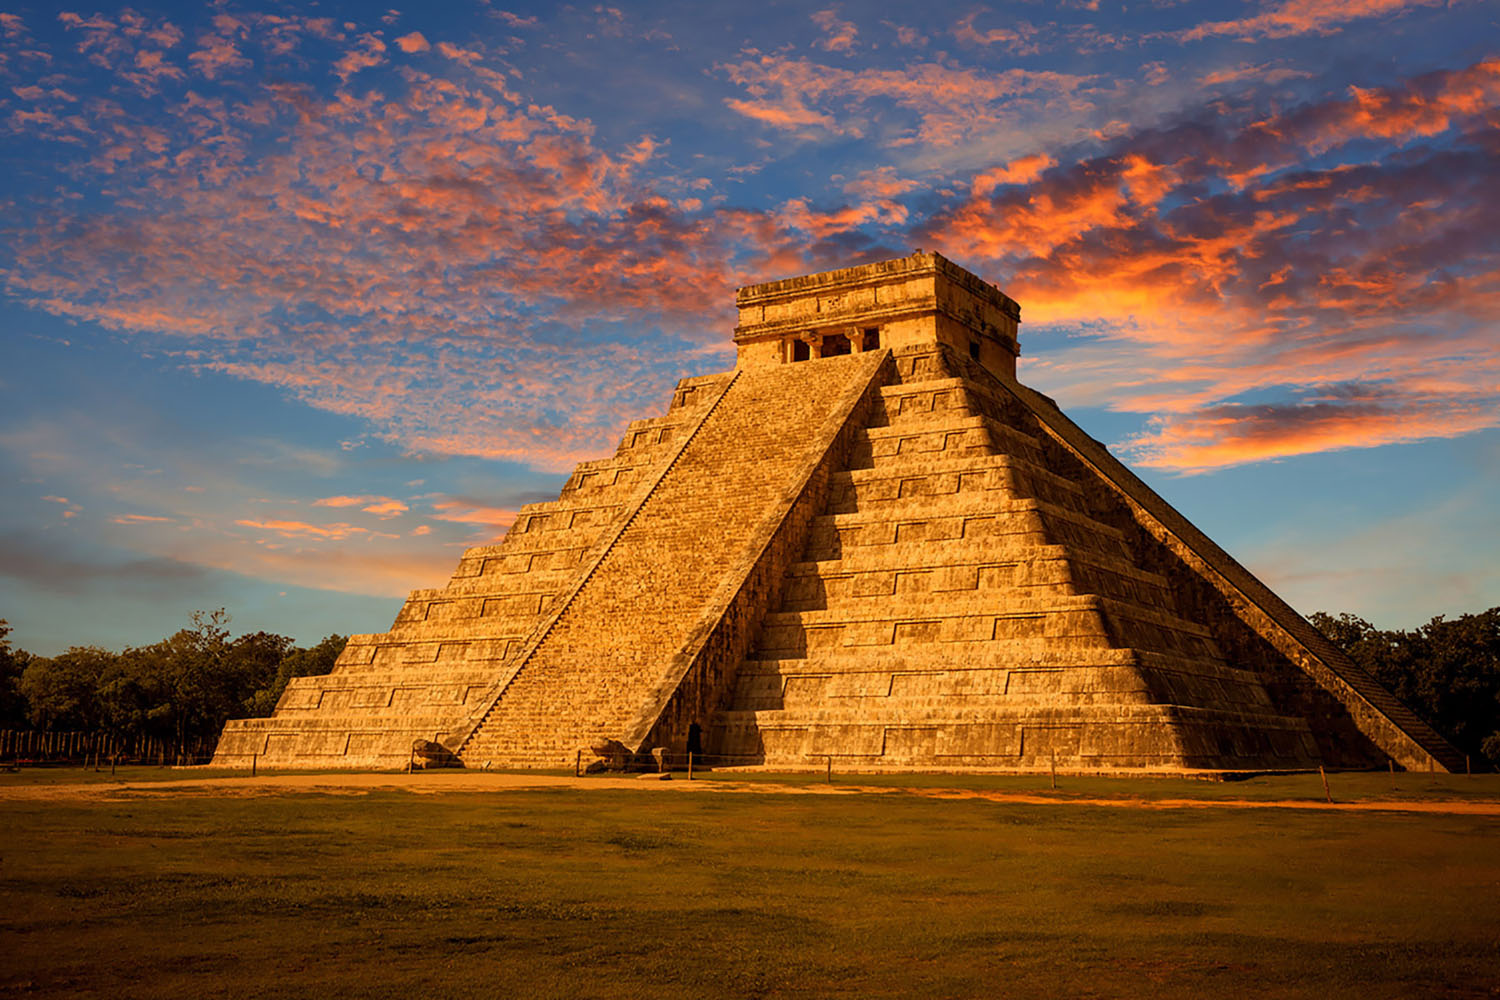 Further north, a visit to Cozumel, Mexico, brings the opportunity to visit Chichén Itza.